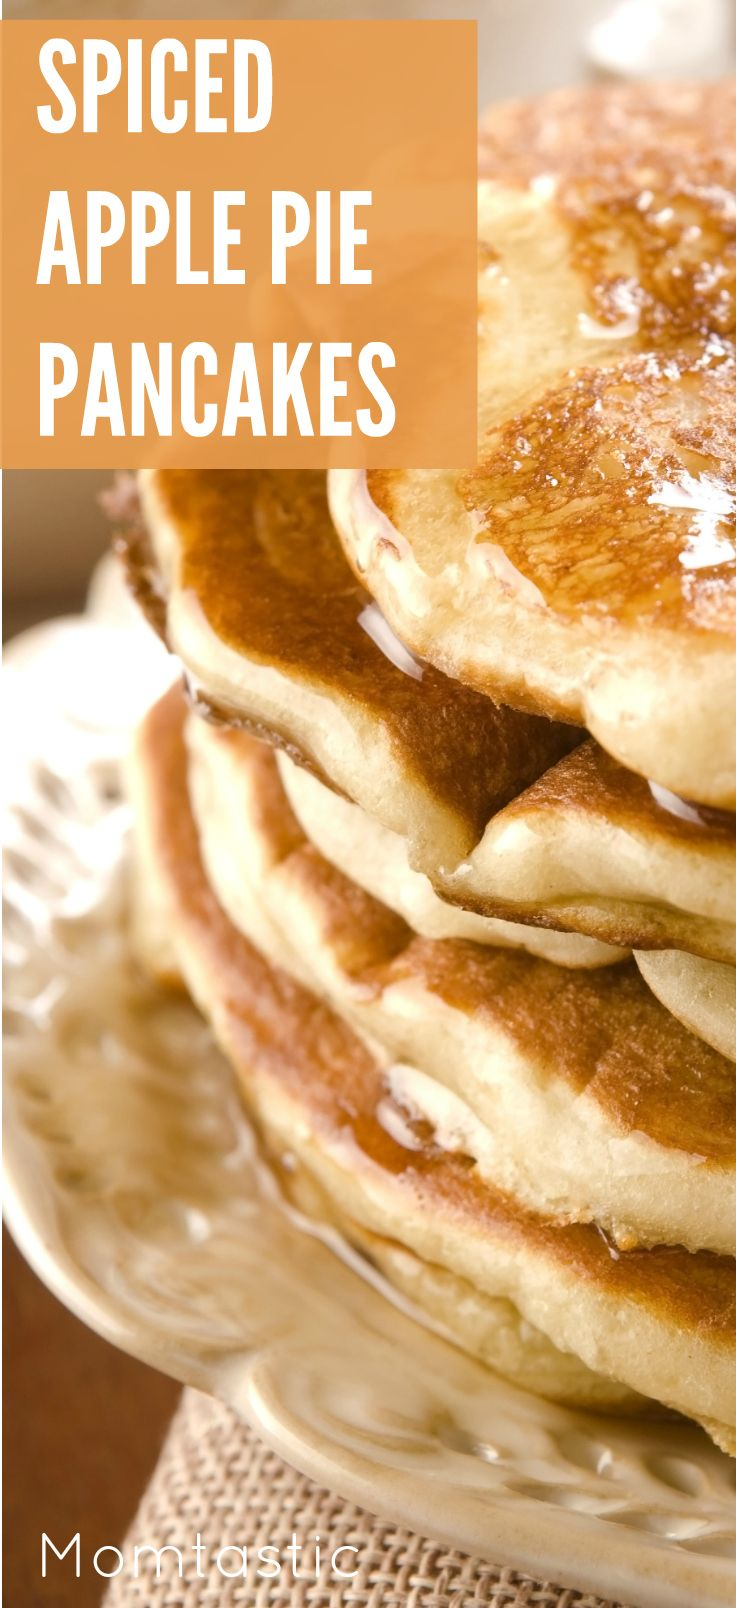 Apple Pie Pancakes | Recipe | Spiced Apples, Pancakes and Apples